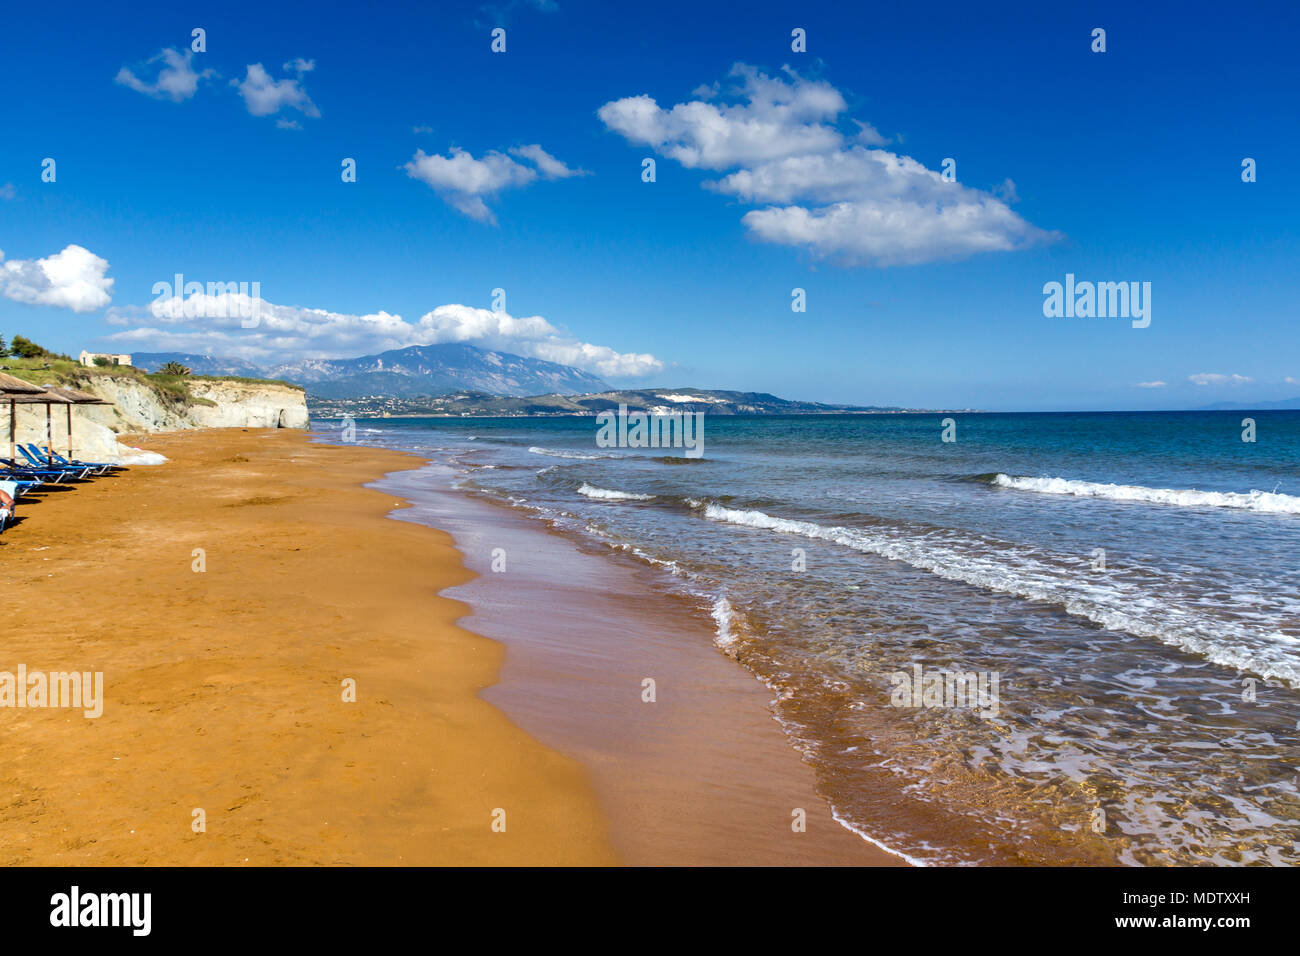 amazing seascape of Xi Beach,beach with red sand in Kefalonia, Ionian islands, Greece - Stock Image